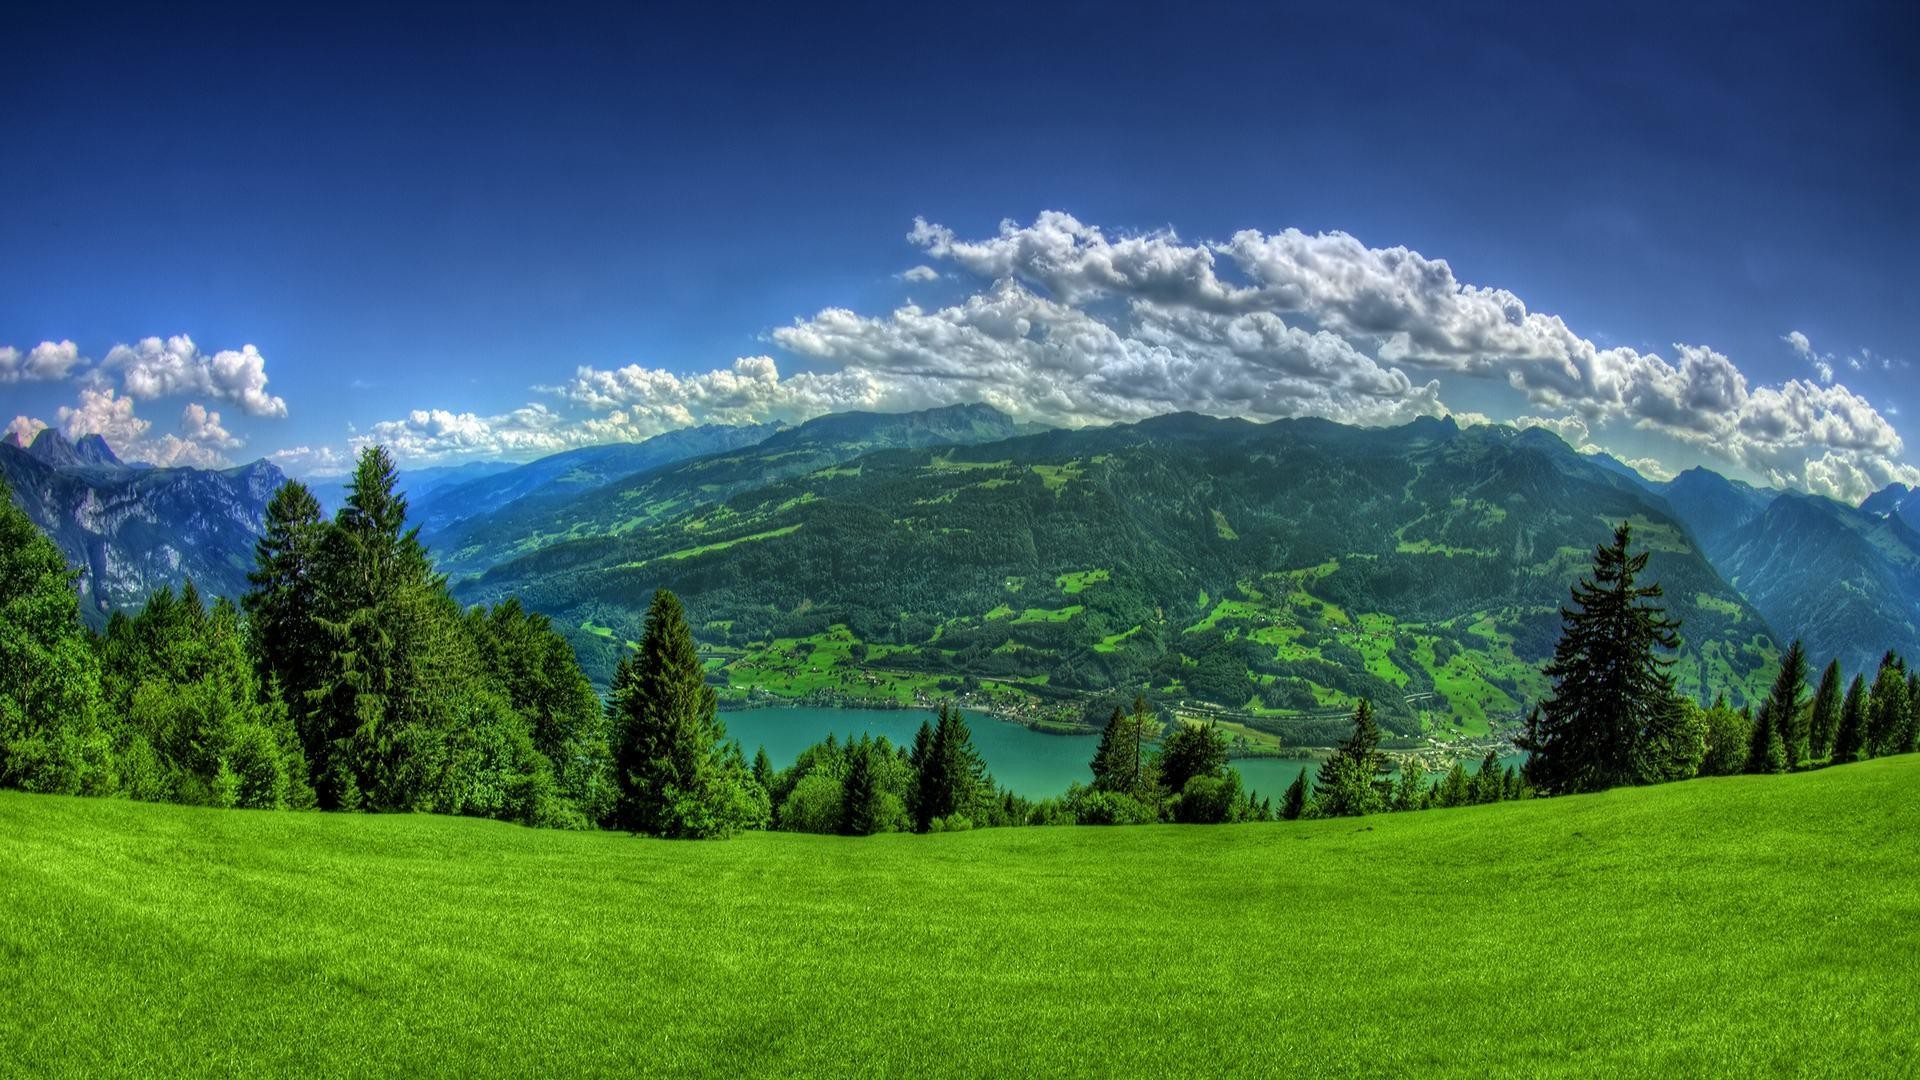 Scenery Wallpapers Backgrounds – Download free Scenery background